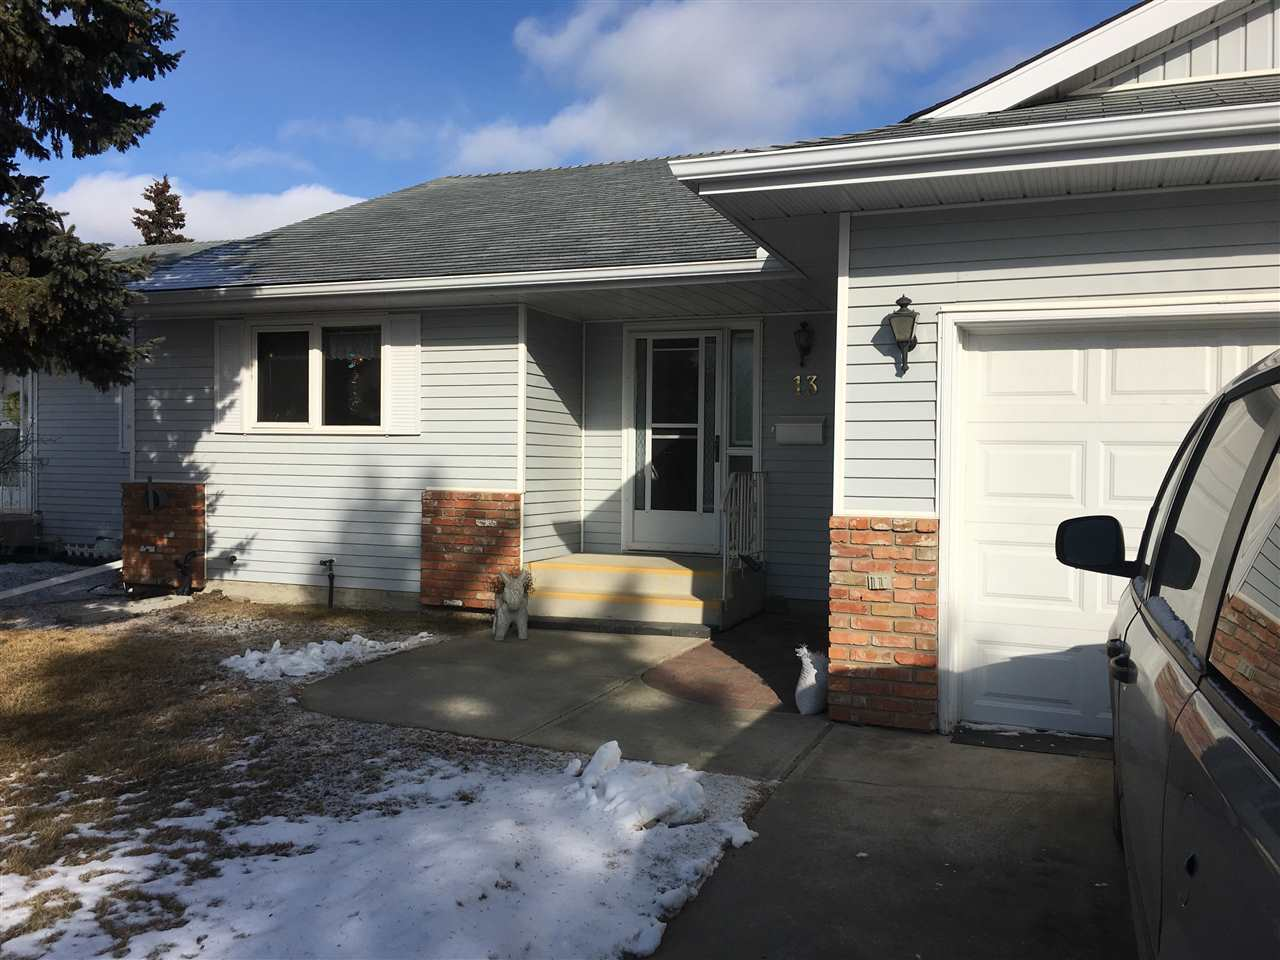 This over 45 adult condo has it all. Centrally located walking distance to Sherwood Park Mall, park areas, rec center and Festival Place this spacious  bungalow has it all. The large entrance is perfect for guests to easily manoeuver coat and shoe removal and has tons of closet space. The oversize kitchen handles large family dinners with loads of cabinets and a pantry. There is also a dining room area for entertaining. Large livingroom is bright and open with lots of windows and patio doors to a big deck. Some owners have converted the deck into beautiful sunrooms to enjoy 4 seasons. Two large bedrooms are quietly tucked away from family area. The master bedroom is huge and features a 4 pce ensuite and massive walk in closet. There is also a 3 pce bath with shower and large storage closet located conveniently across from the second bedroom. The 19'X18.5' double garage easily holds two cars with room to spare. This development is spic and span and clearly beautifully managed. Newer furnace &hot H20 tank